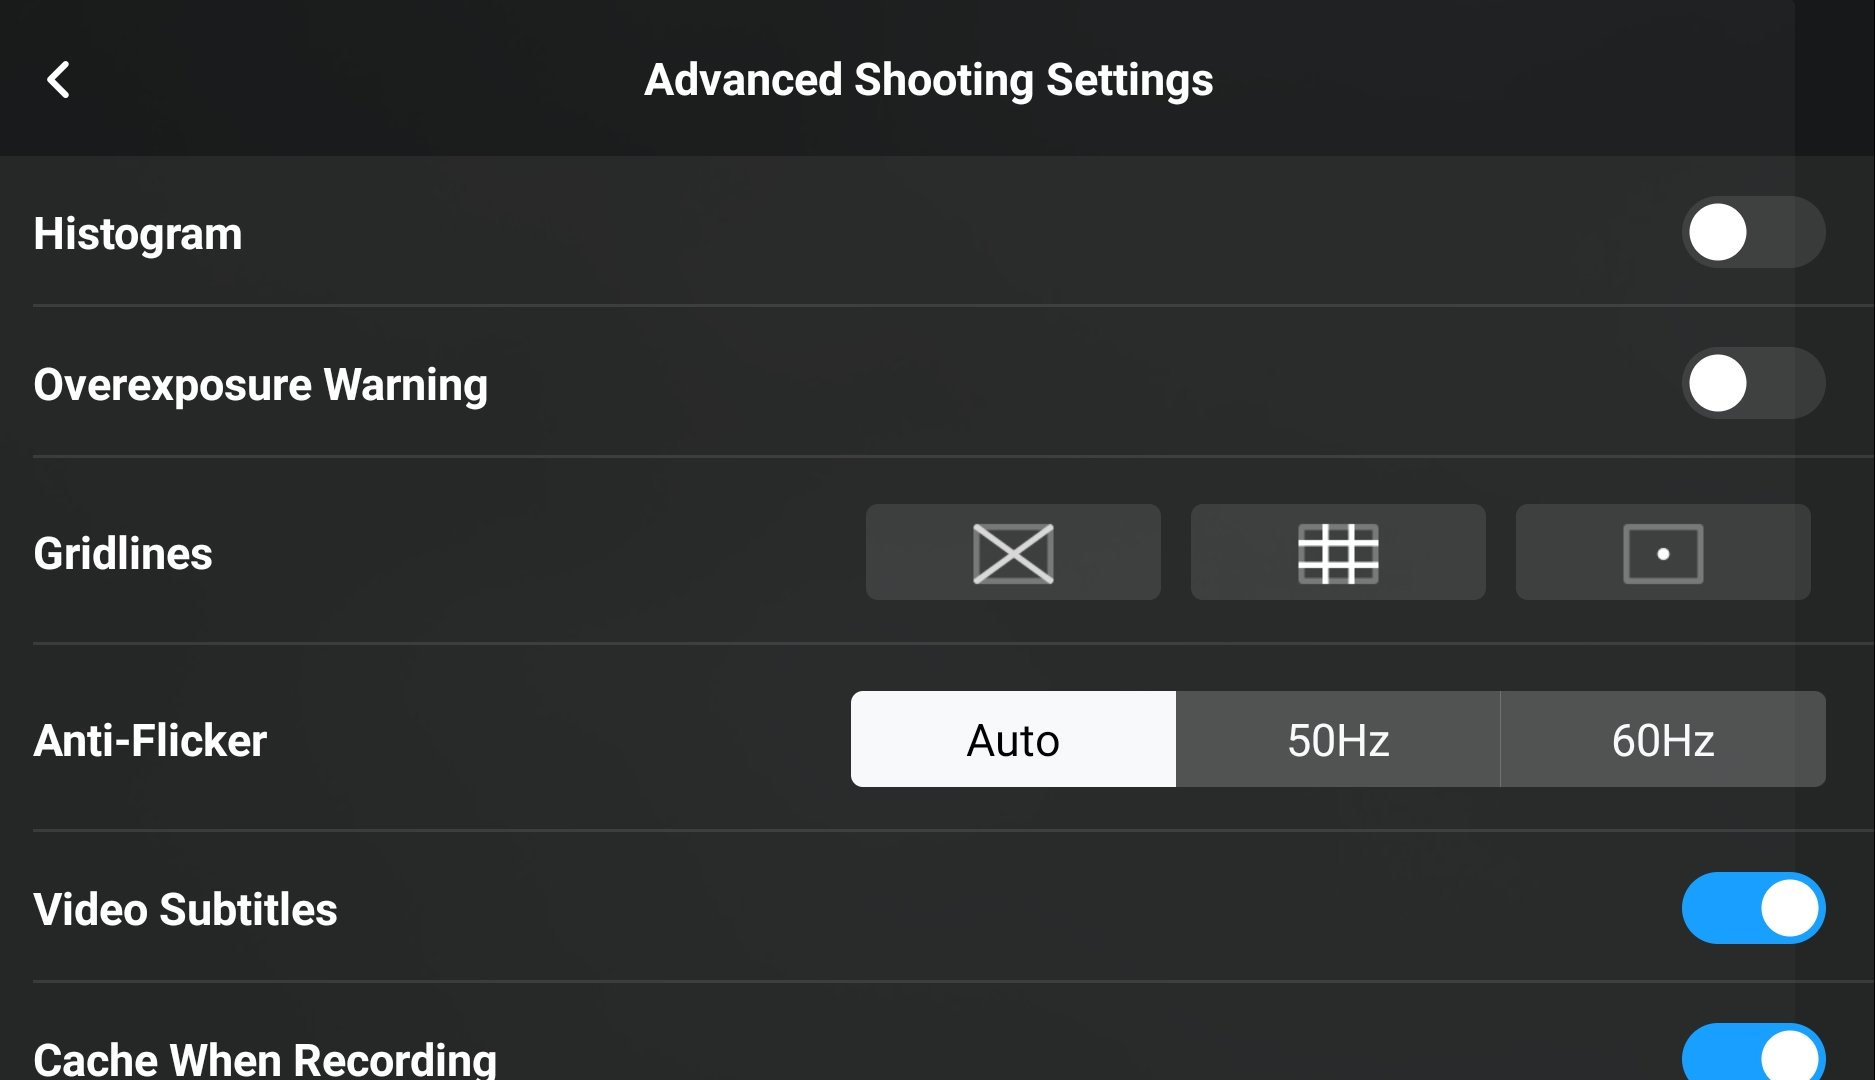 DJI Fly Advanced Shooting Settings